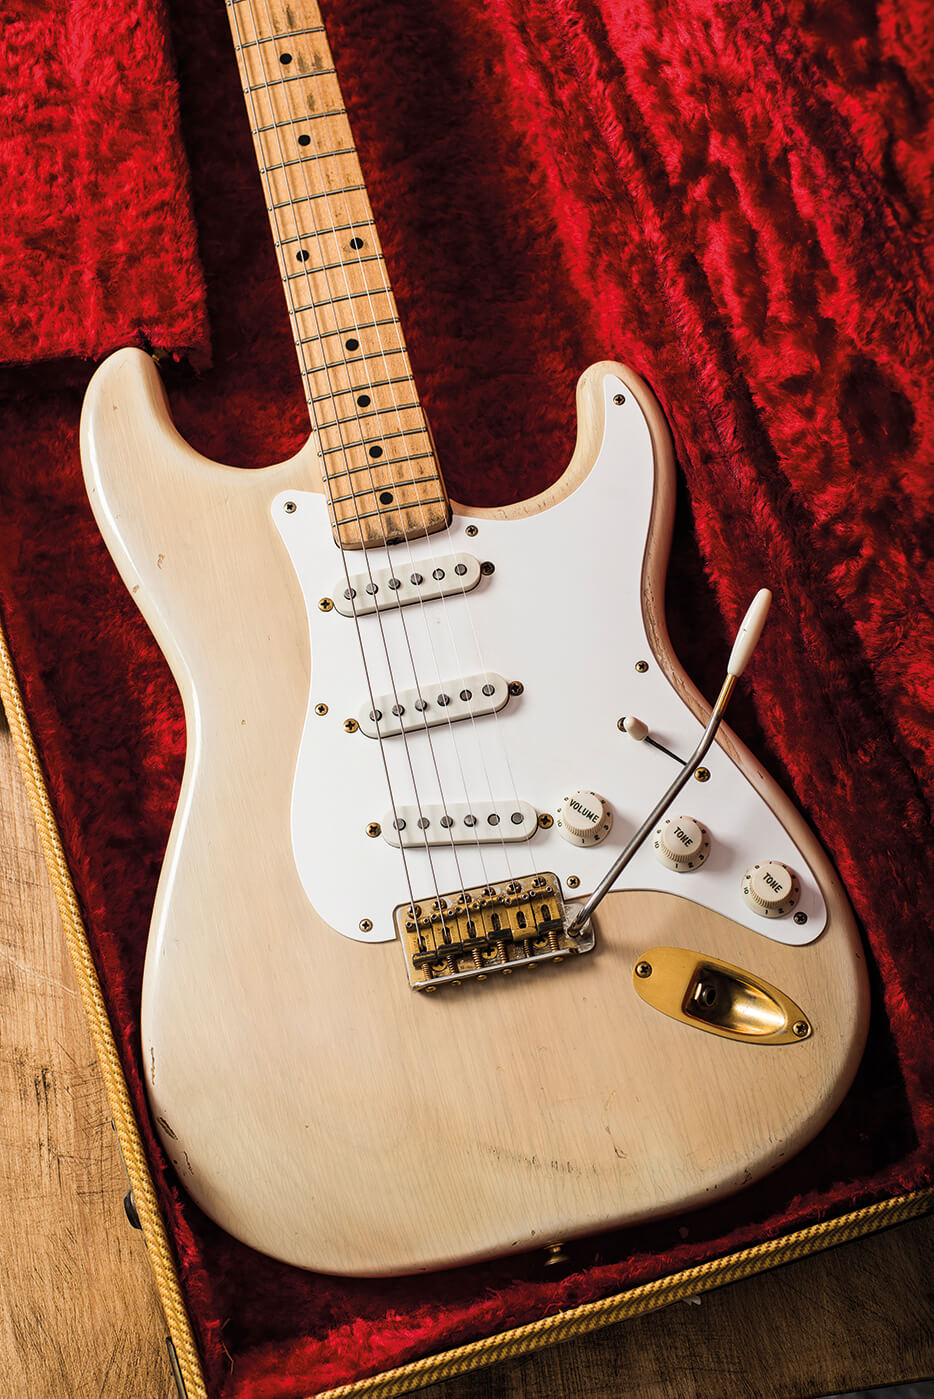 Get the guaranteed best price on Solid Body Electric Guitars like the Fender Artist Series Buddy Guy Polka Dot Stratocaster Electric Guitar at Musicians Friend.